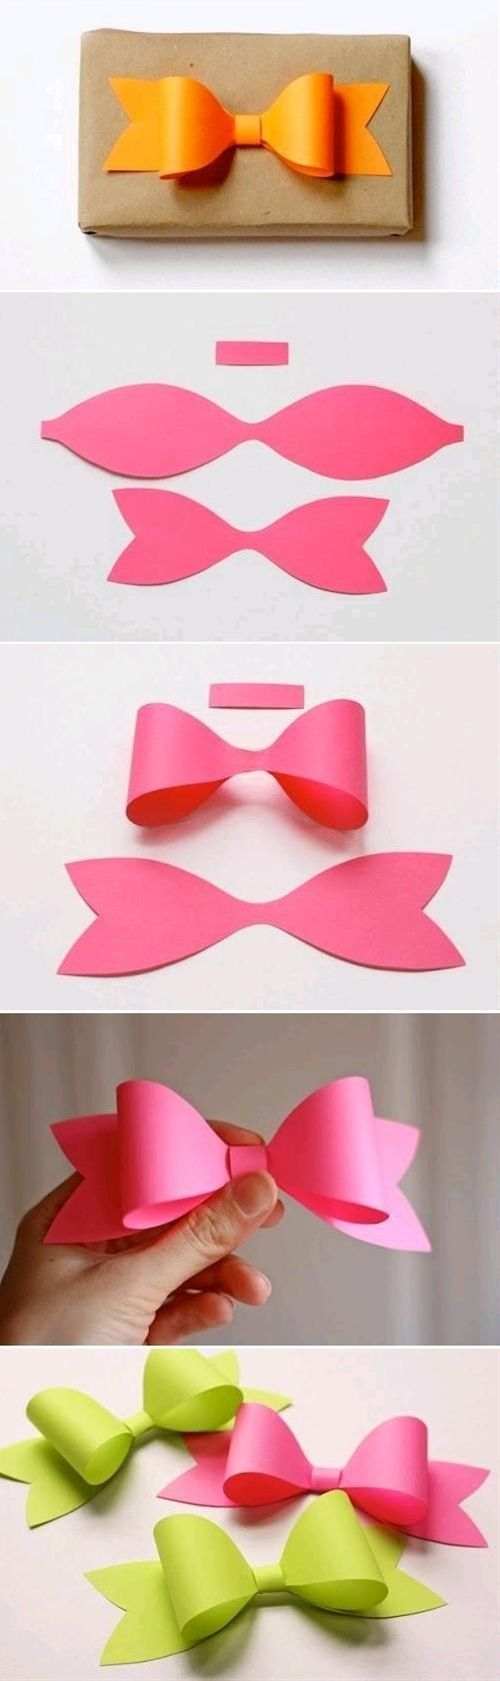 Card Stock bows!